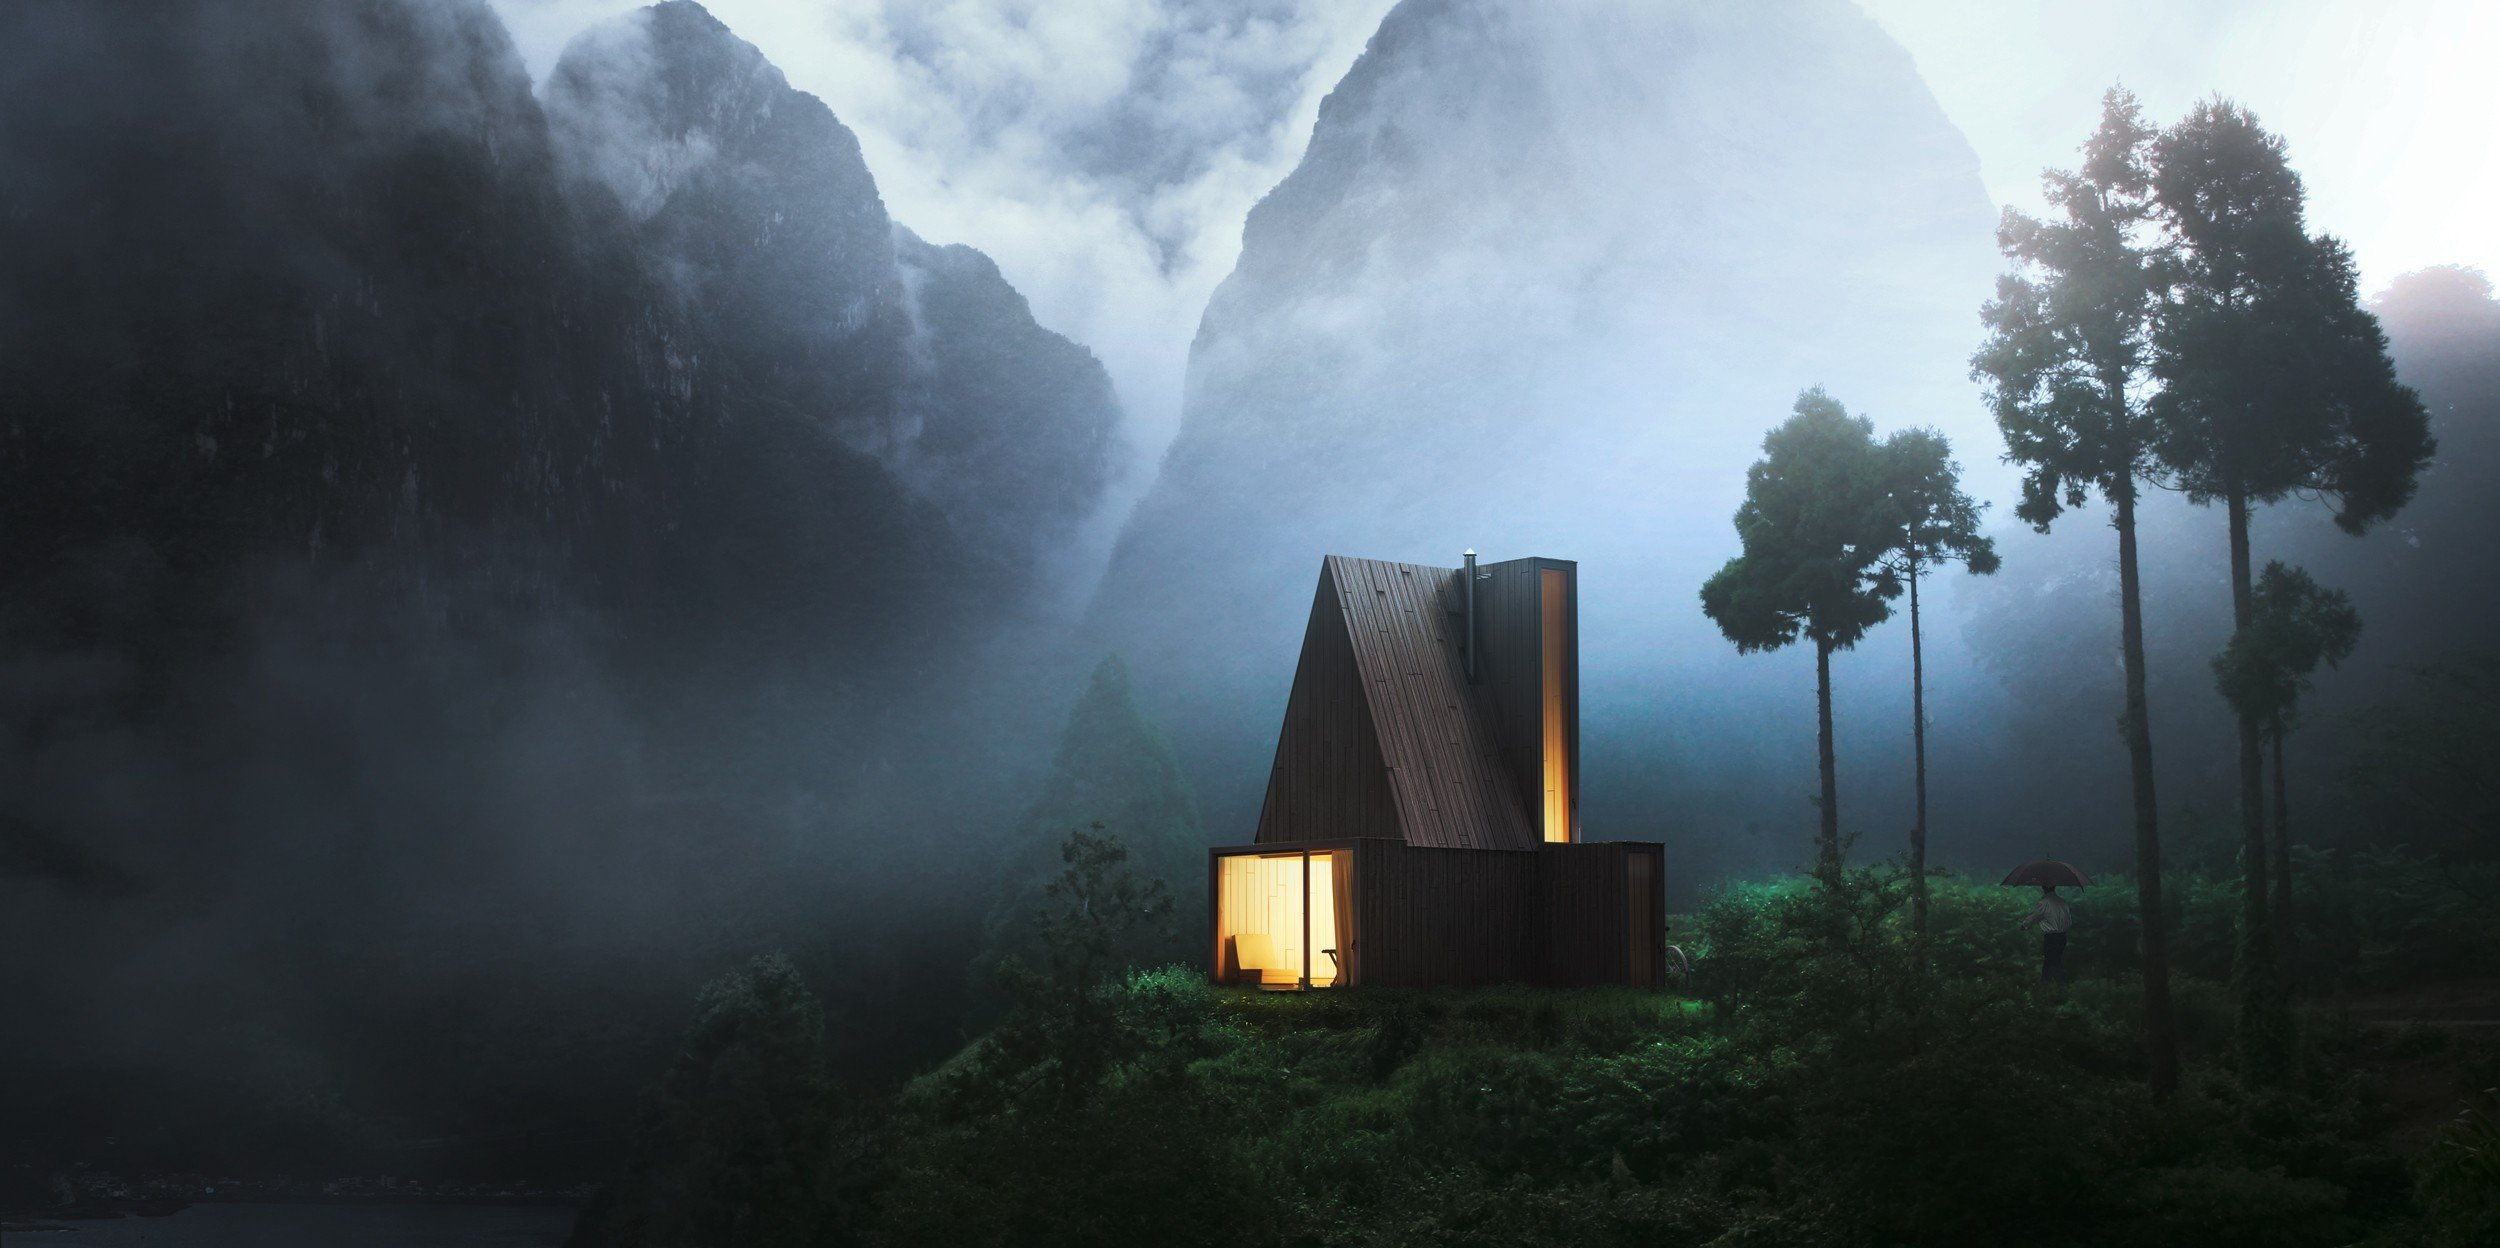 Cabin Forest Wood Night Mountains Lights House Mist Hd Wallpapers Desktop And Mobile Images Photos